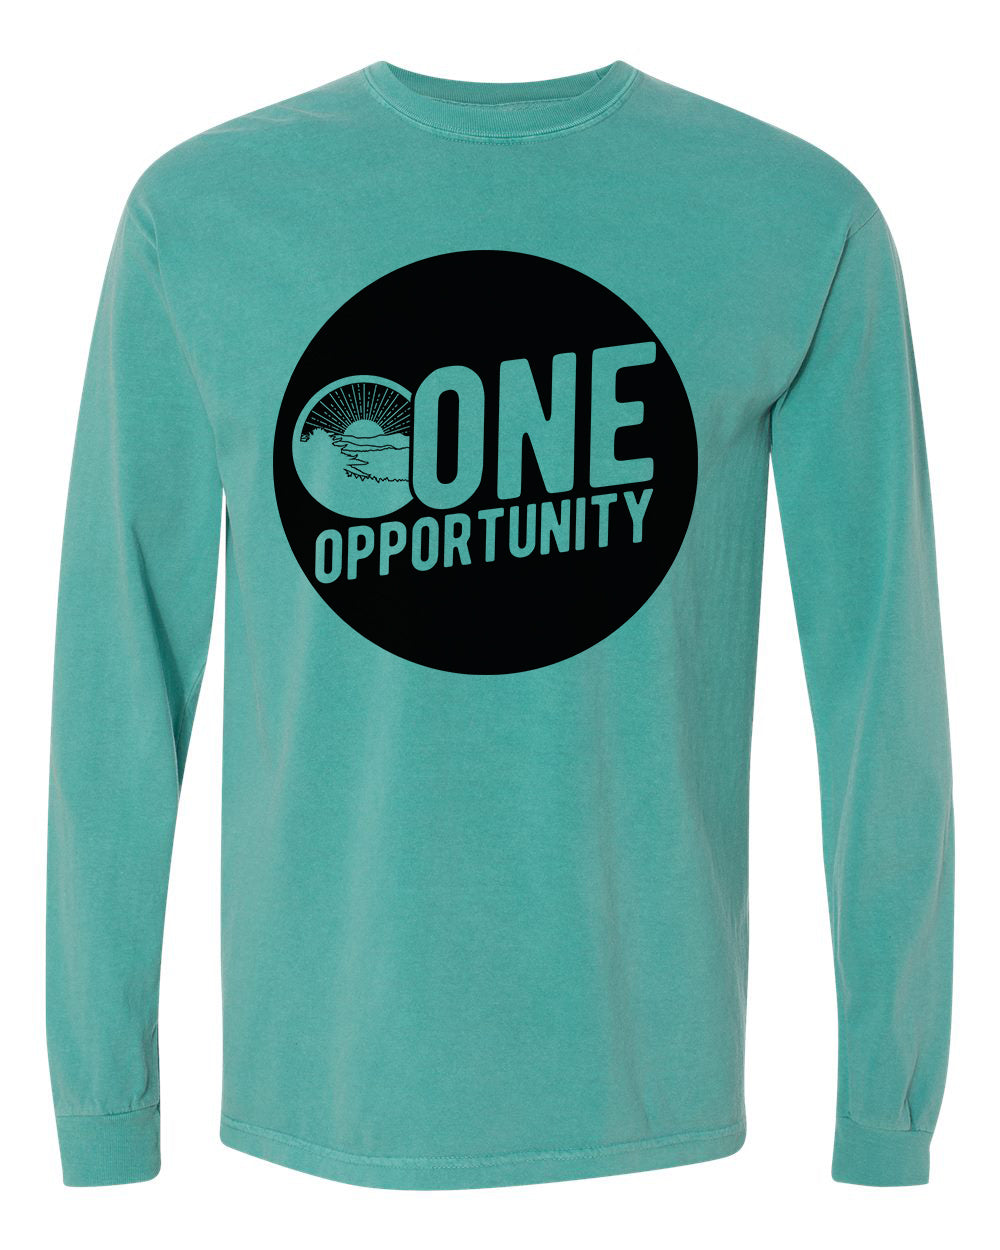 One Opportunity Long Sleeve